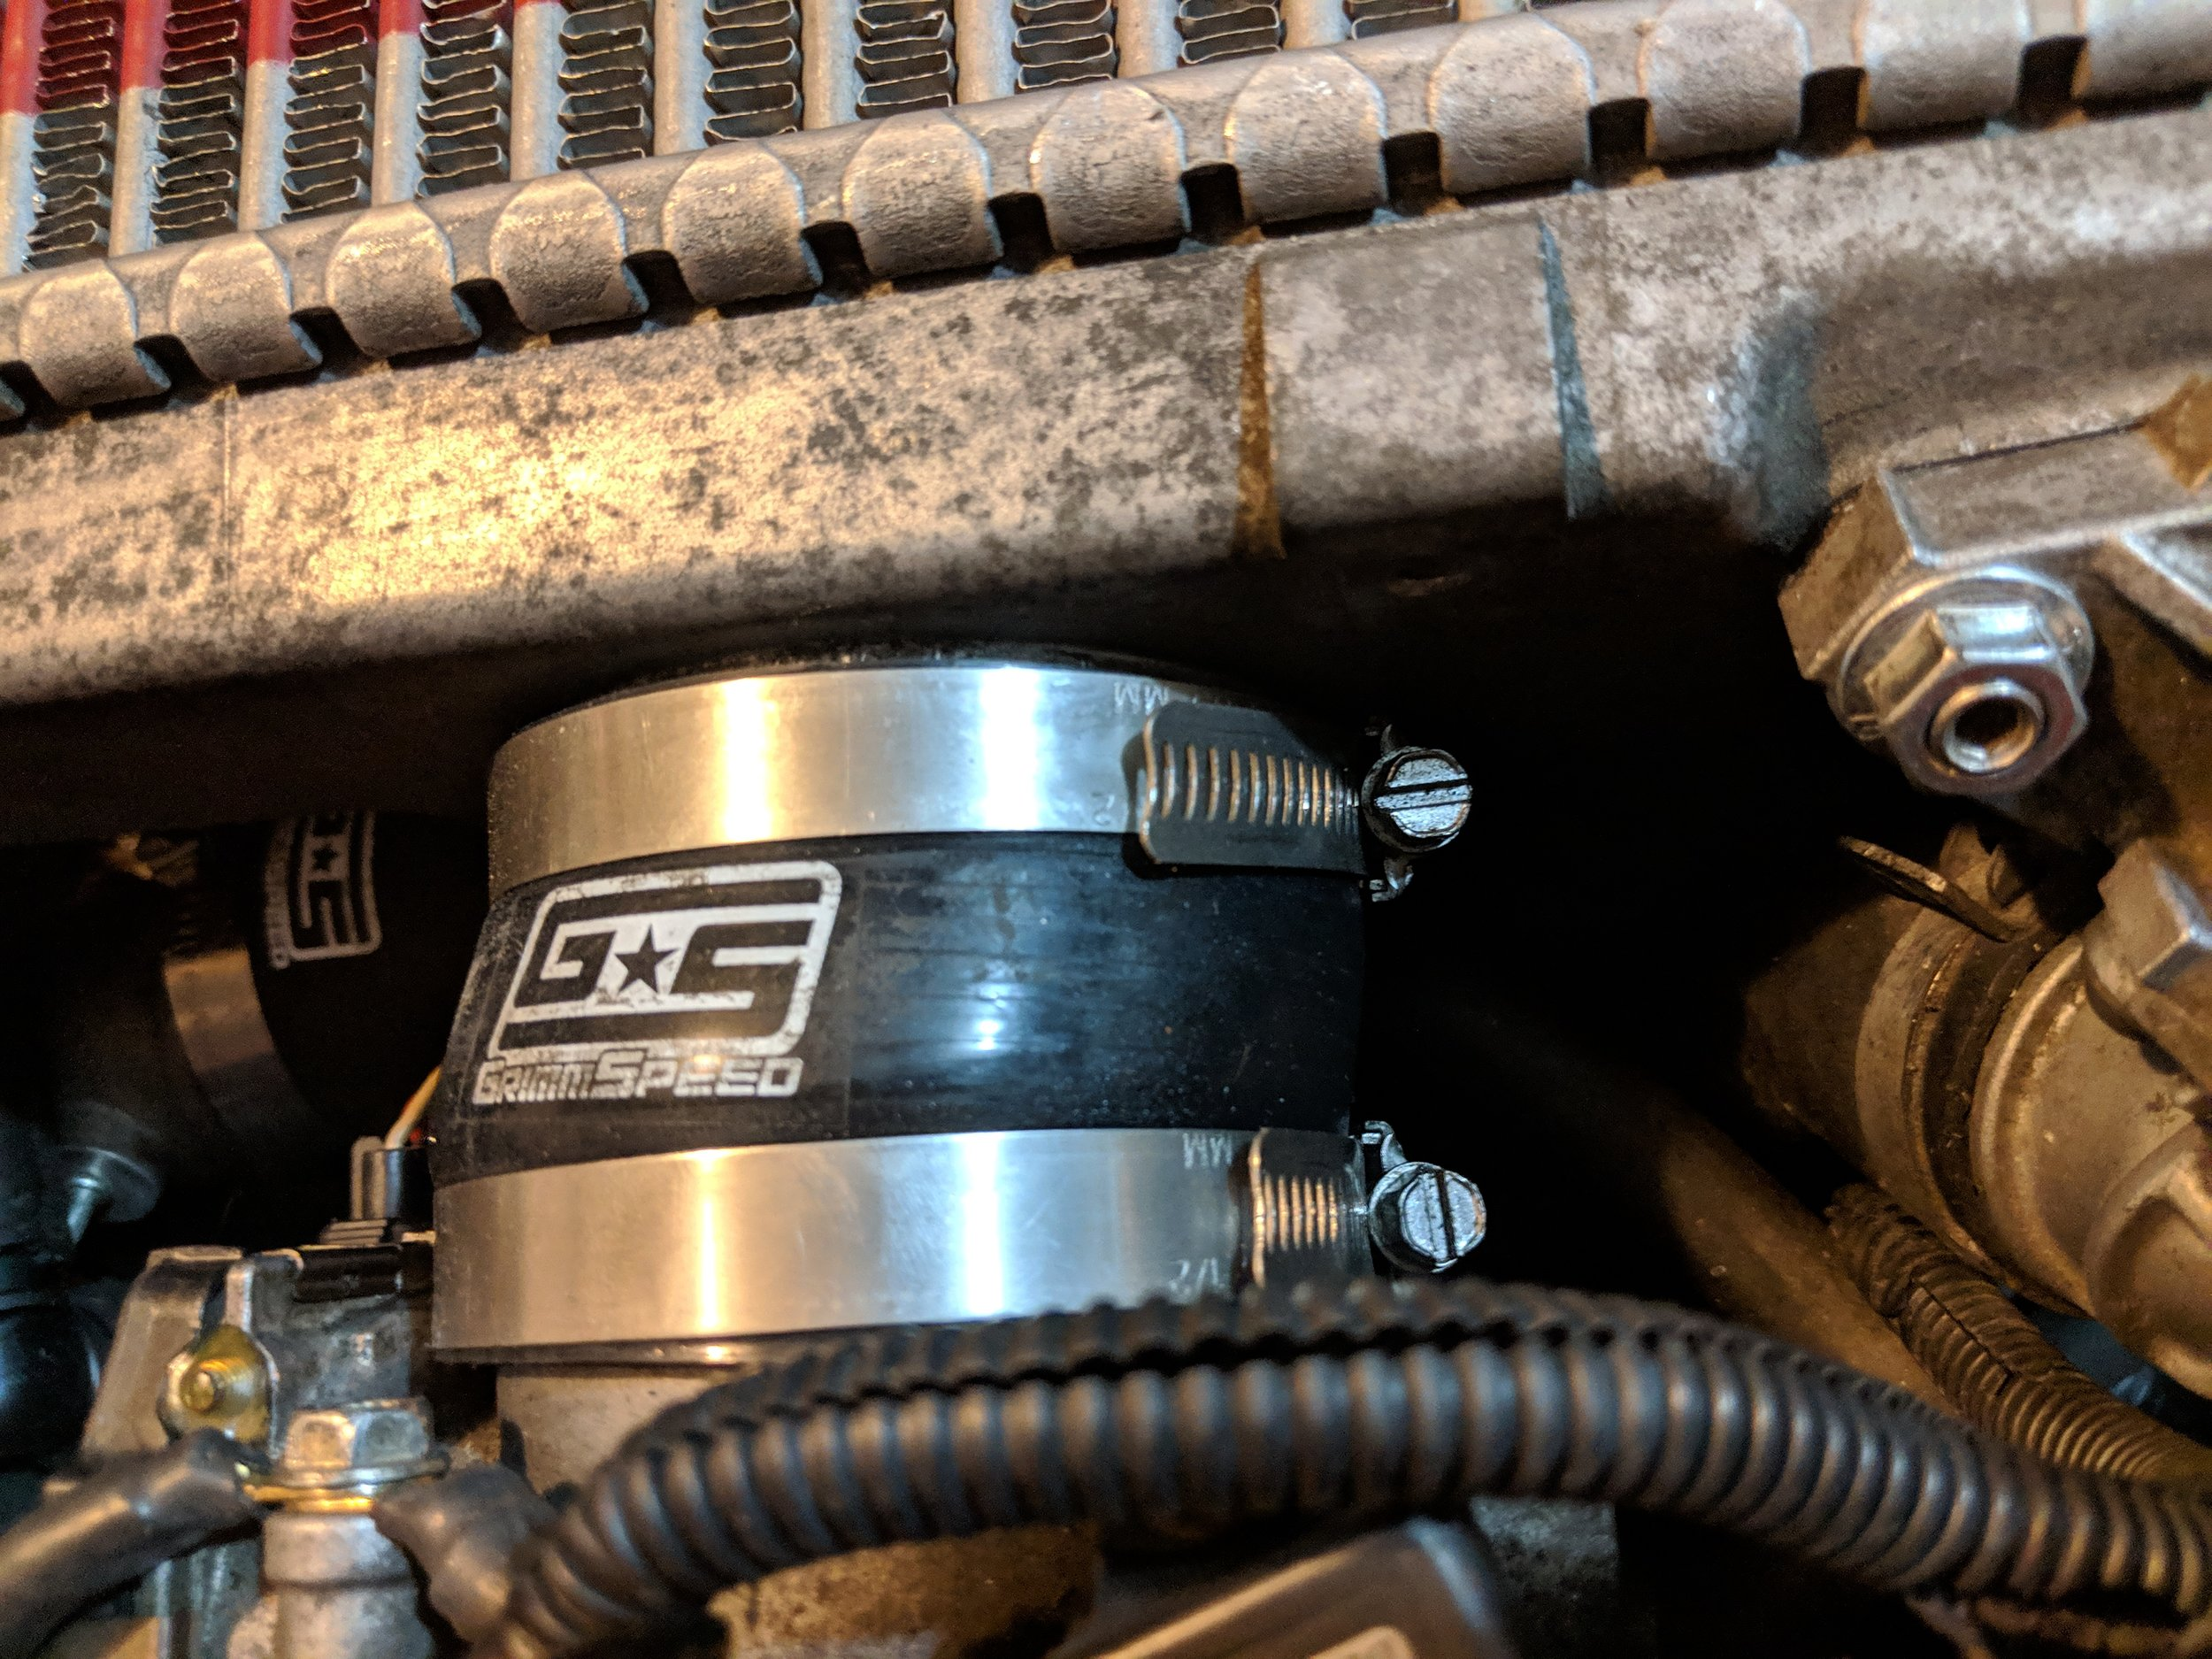 Preferred placement of the intercooler to throttle body couple. Driver's side tucked down by the BPV(Bypass valve)